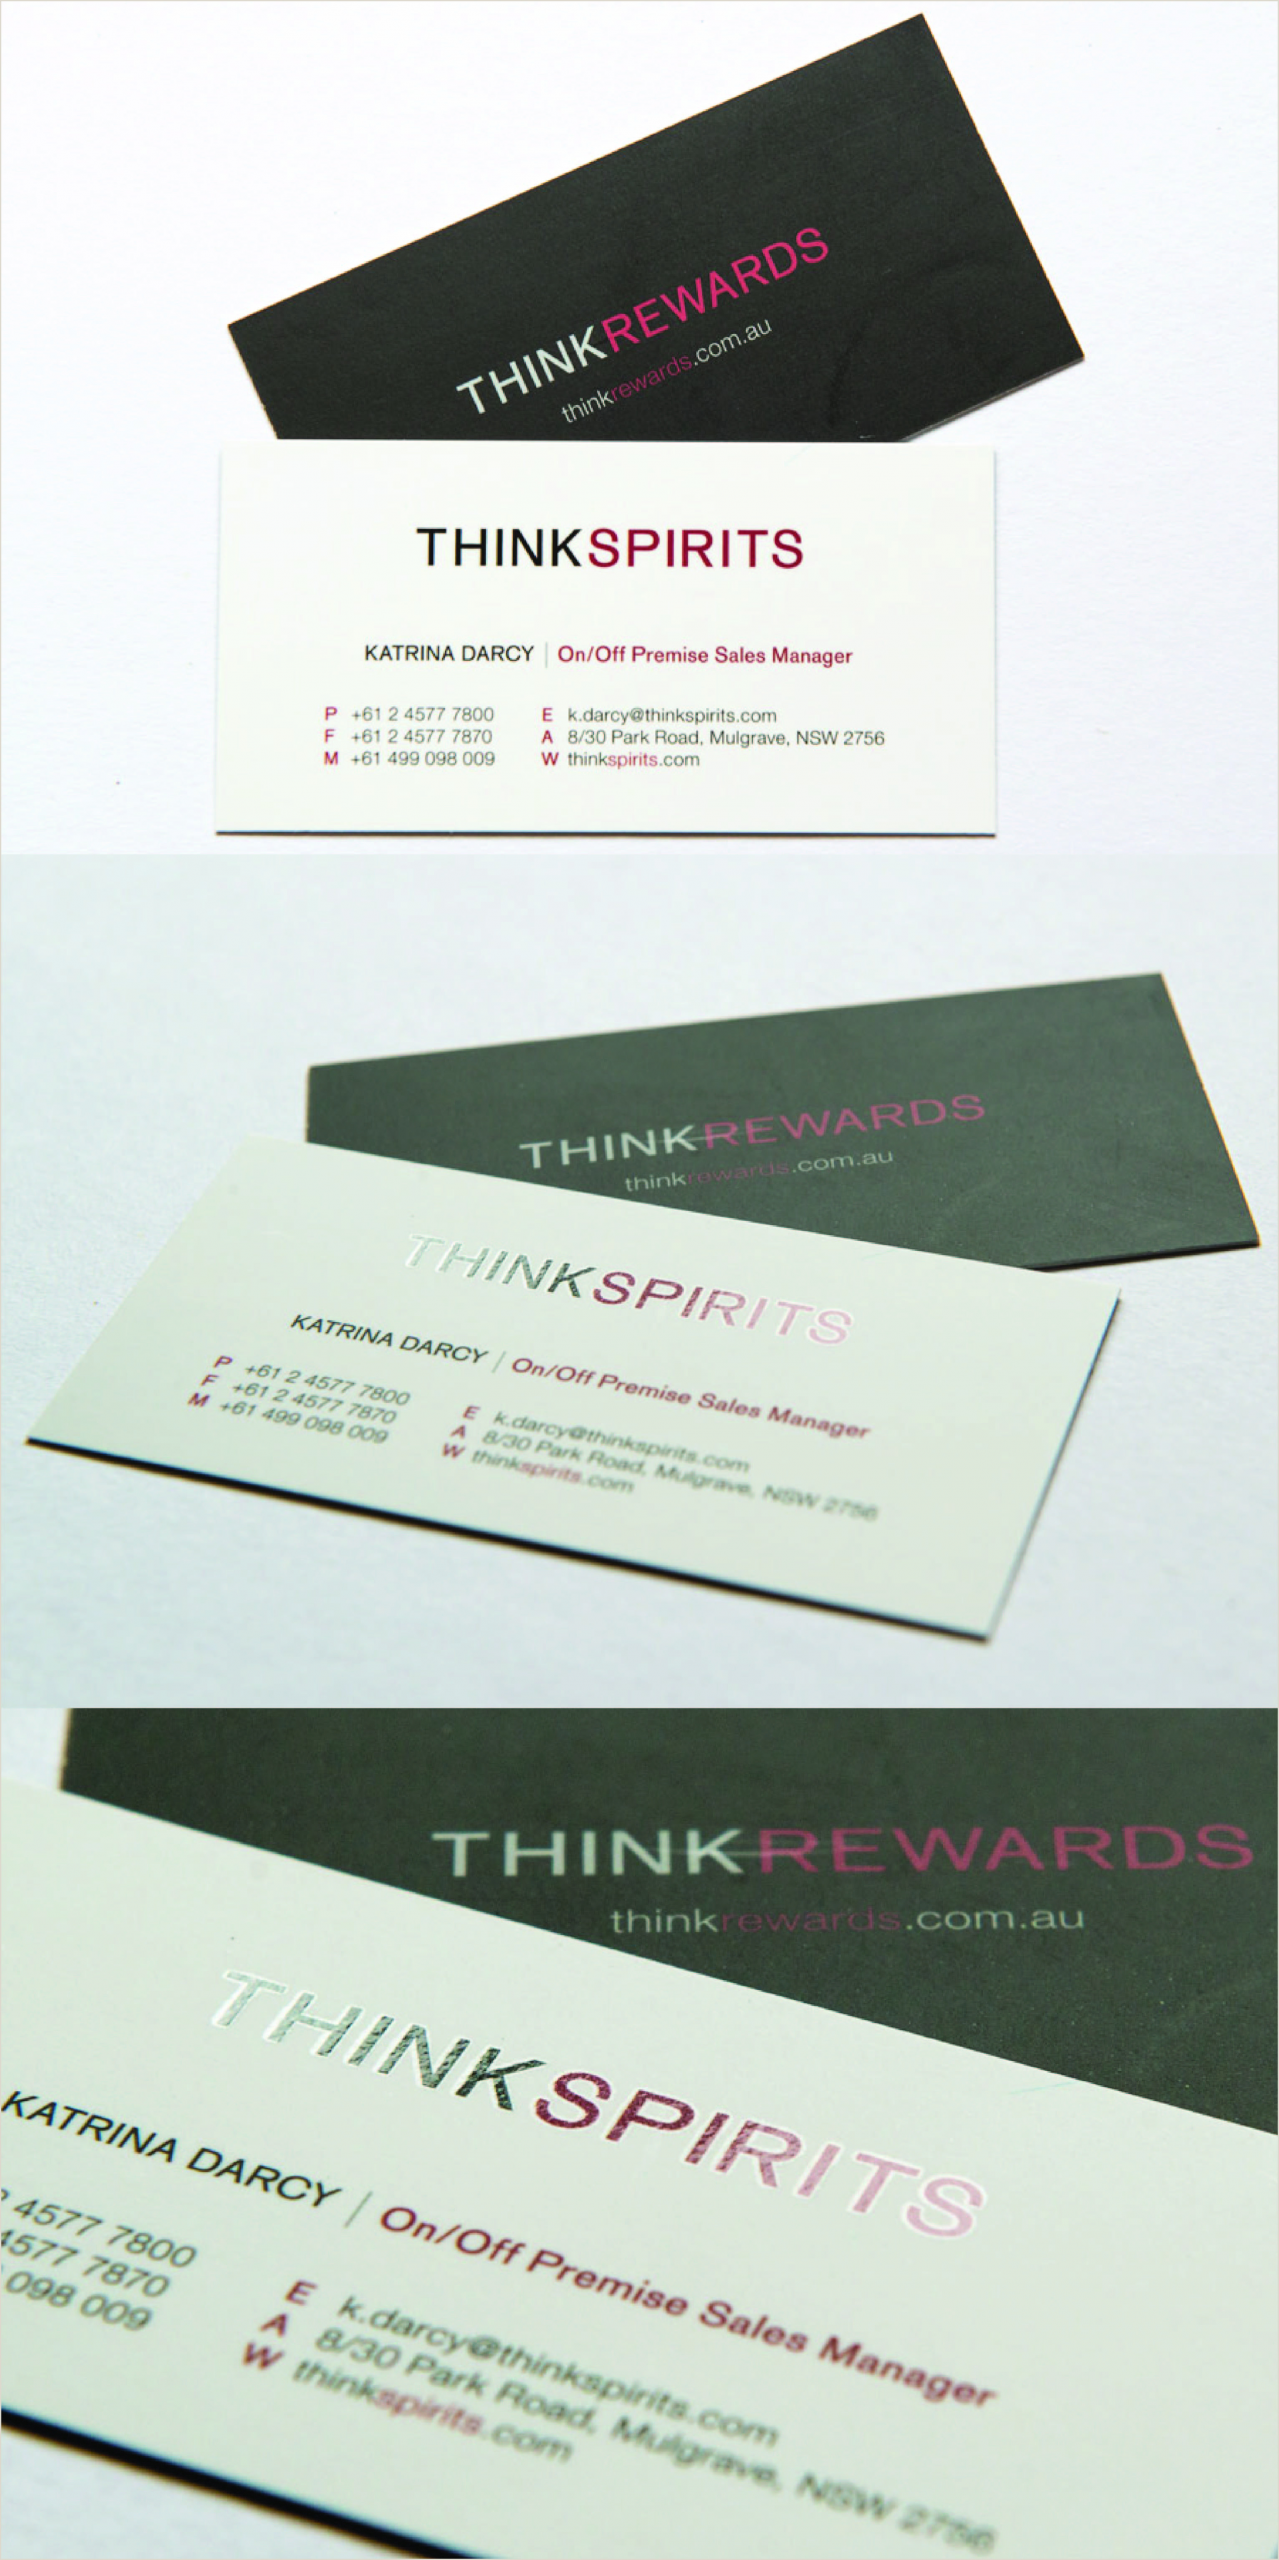 Business Cards That Stand Out The Economy Business Cards Are The Standard Choice Out Of